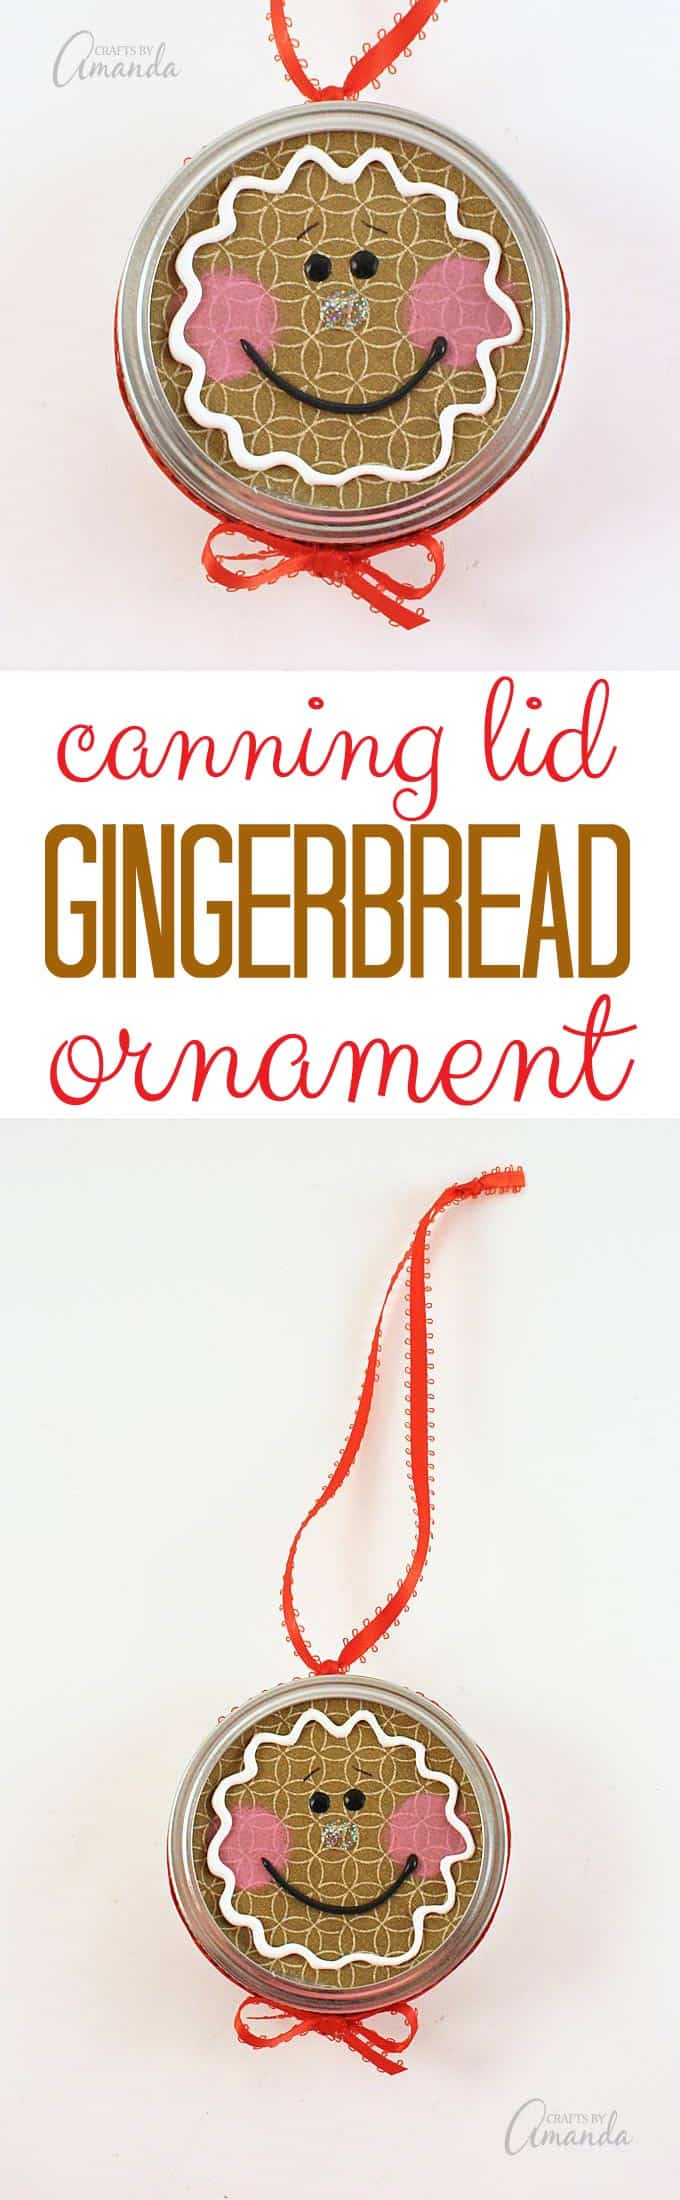 Gingerbread man ornament craft - Turn A Canning Jar Lid Into A Sweet Gingerbread Man With This Canning Lid Ornament Project